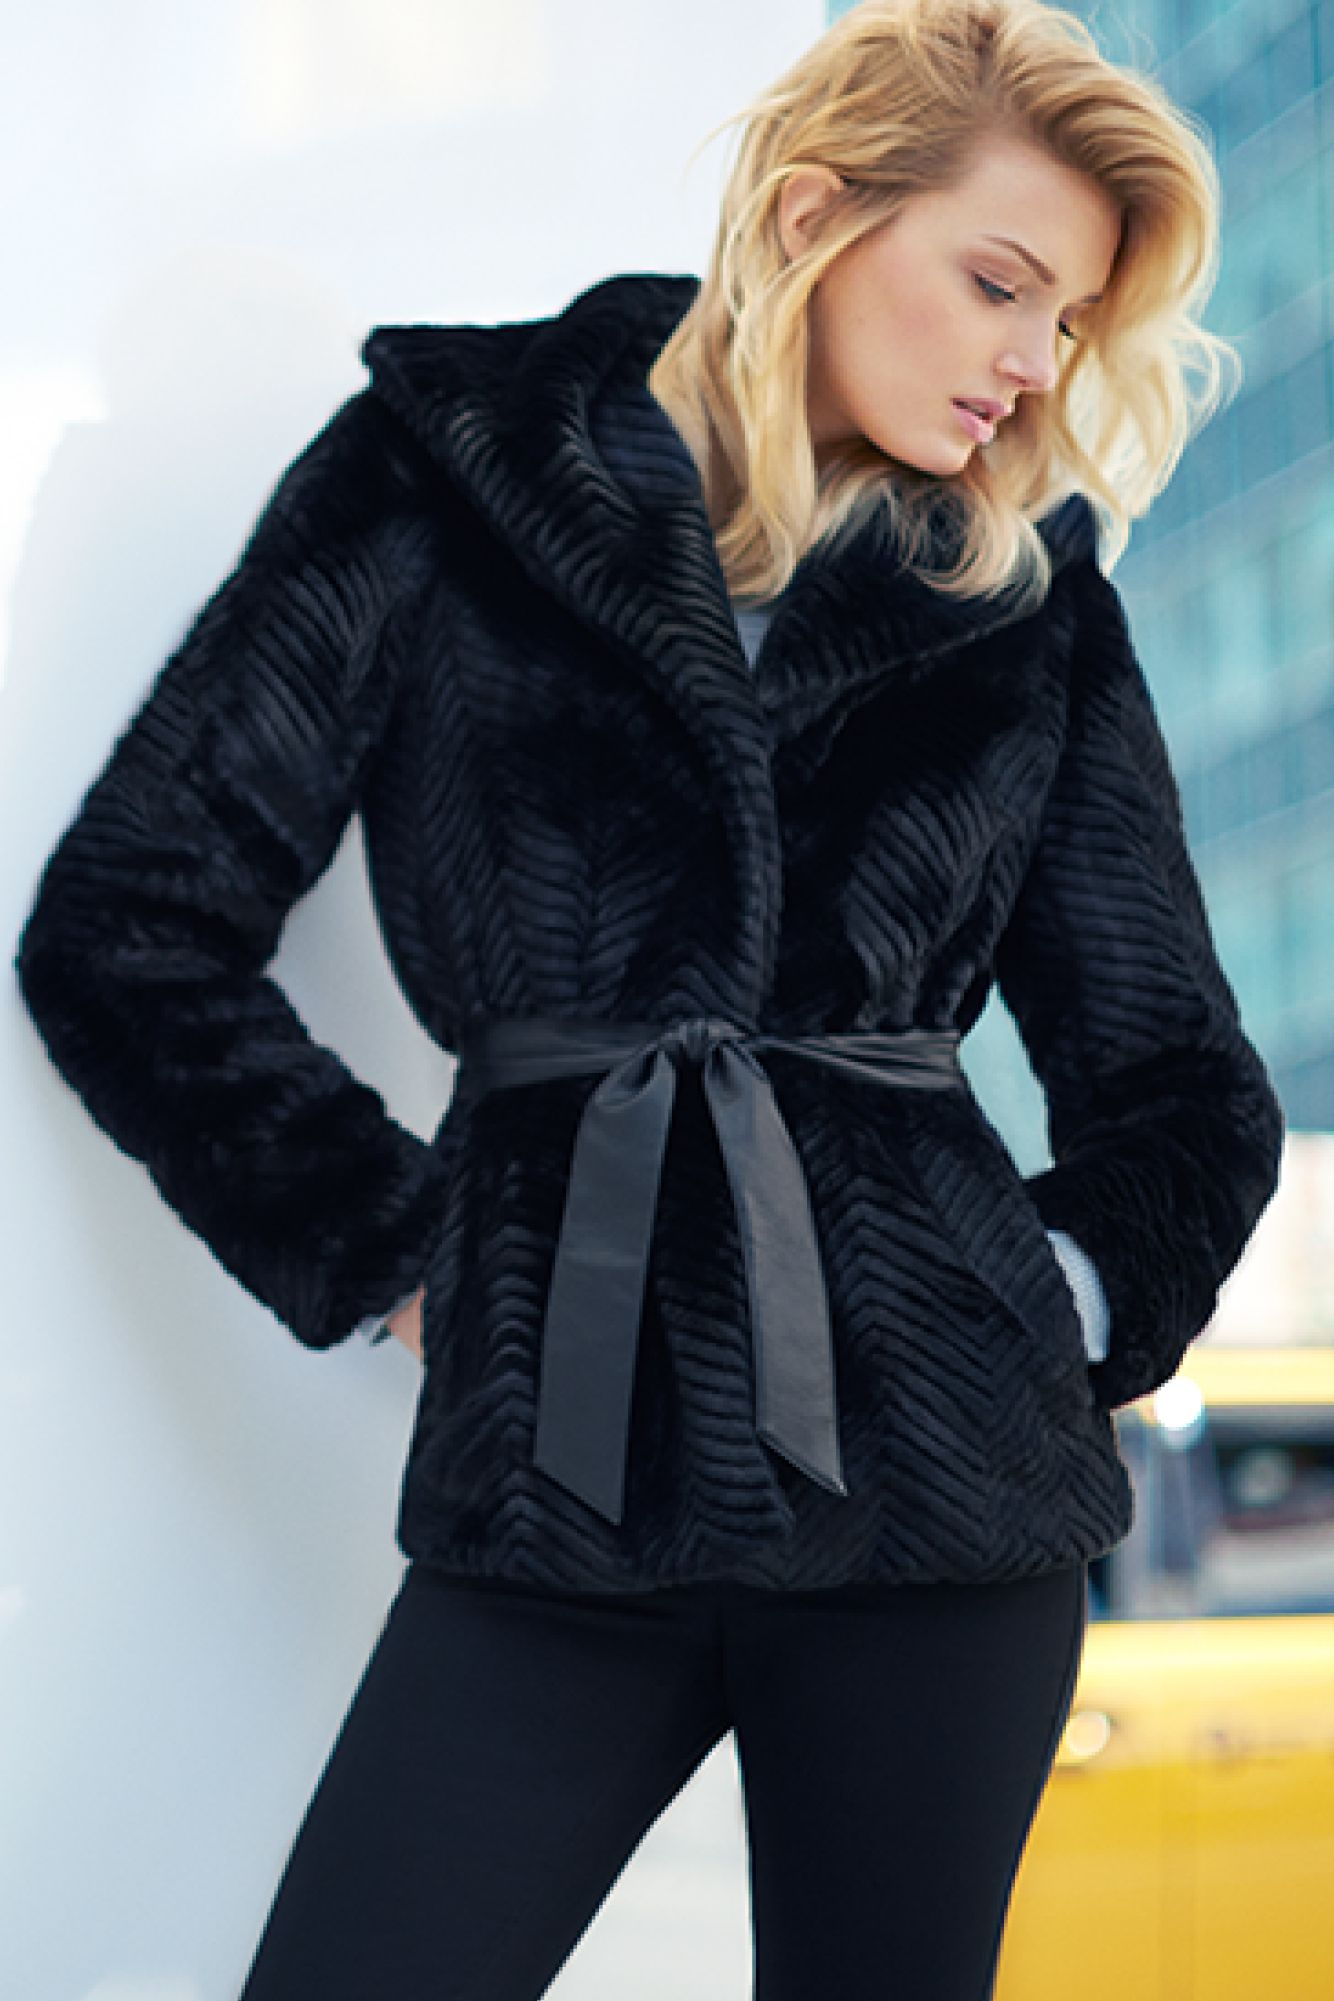 Black fitted fauxfur jacket with tie belt in imitation